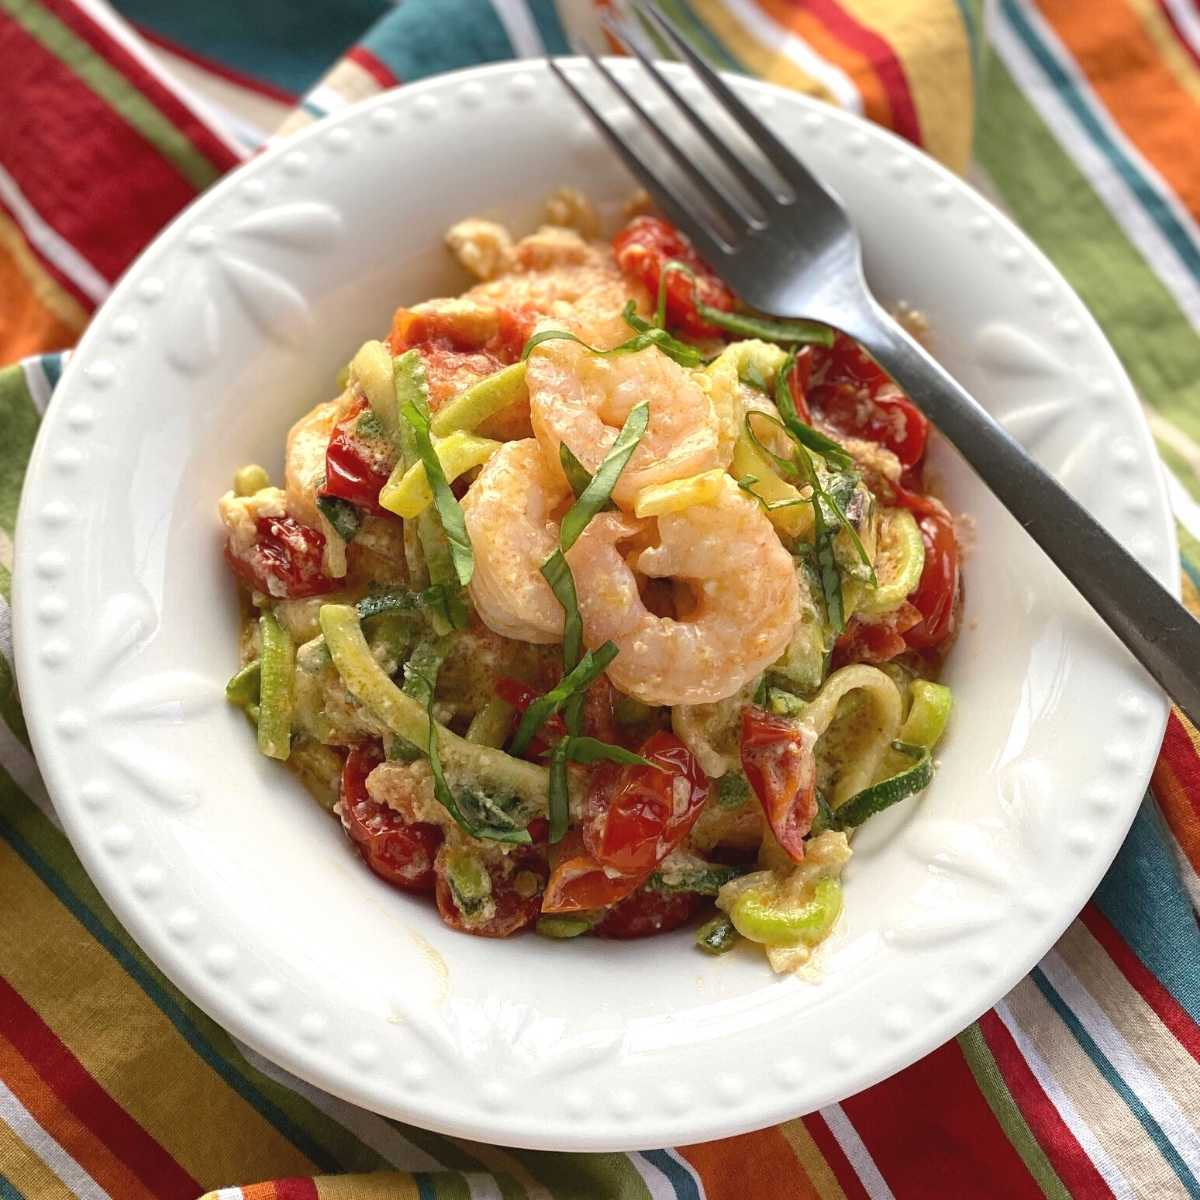 Viral Tik Tok Baked Feta Zoodles and Shrimp in a bowl with a fork.